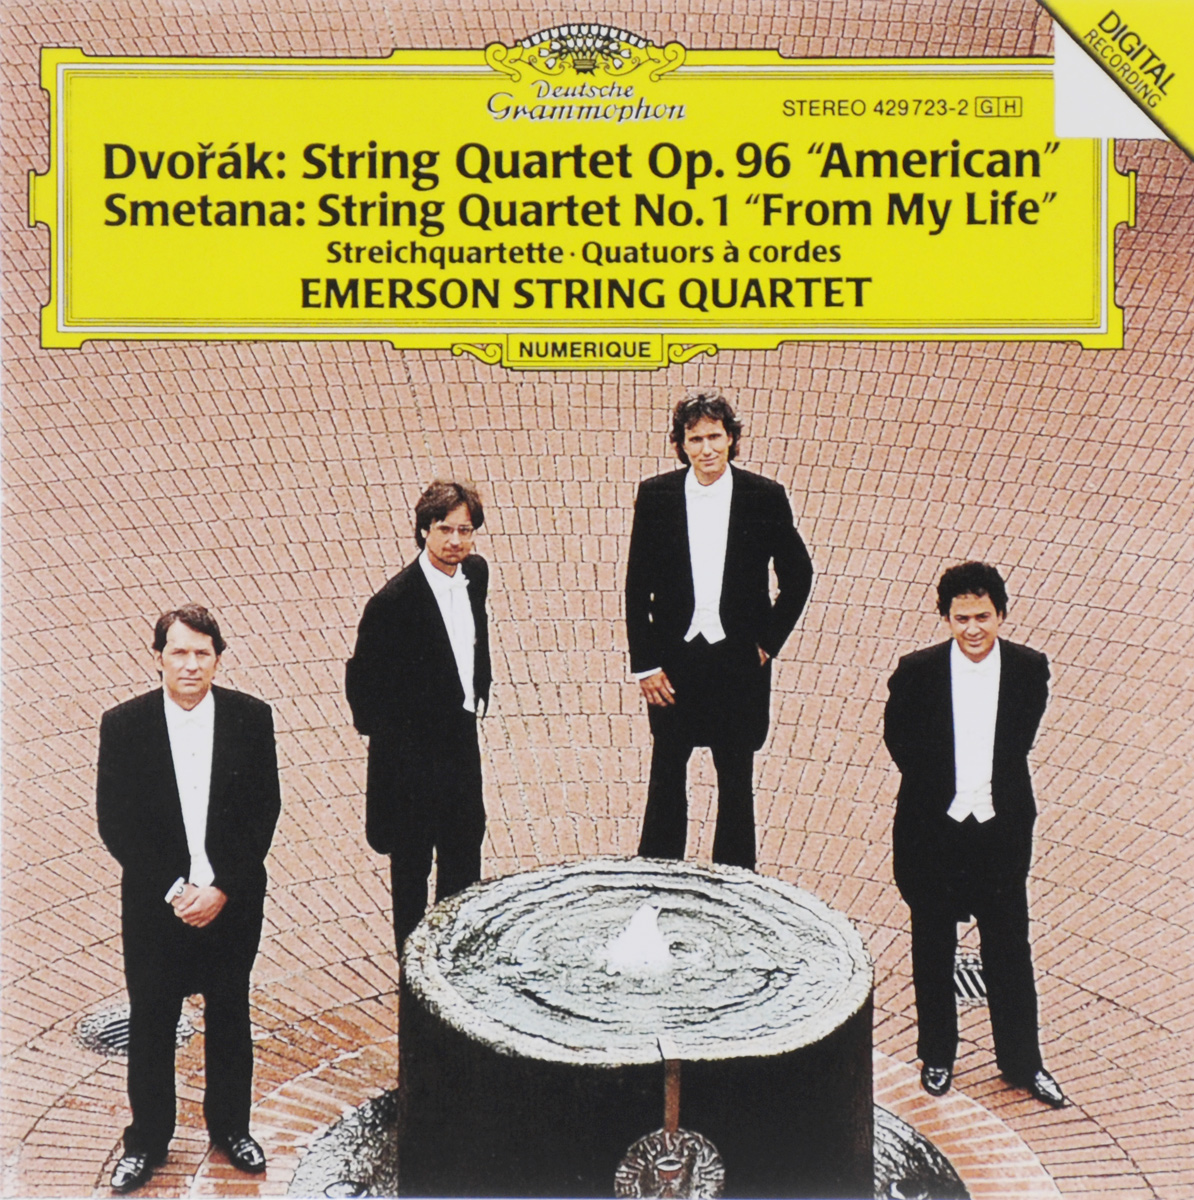 Emerson String Quartet Emerson String Quartet. String Quartet Op. 96 American / String Quartet No. 1 From My Life i3250